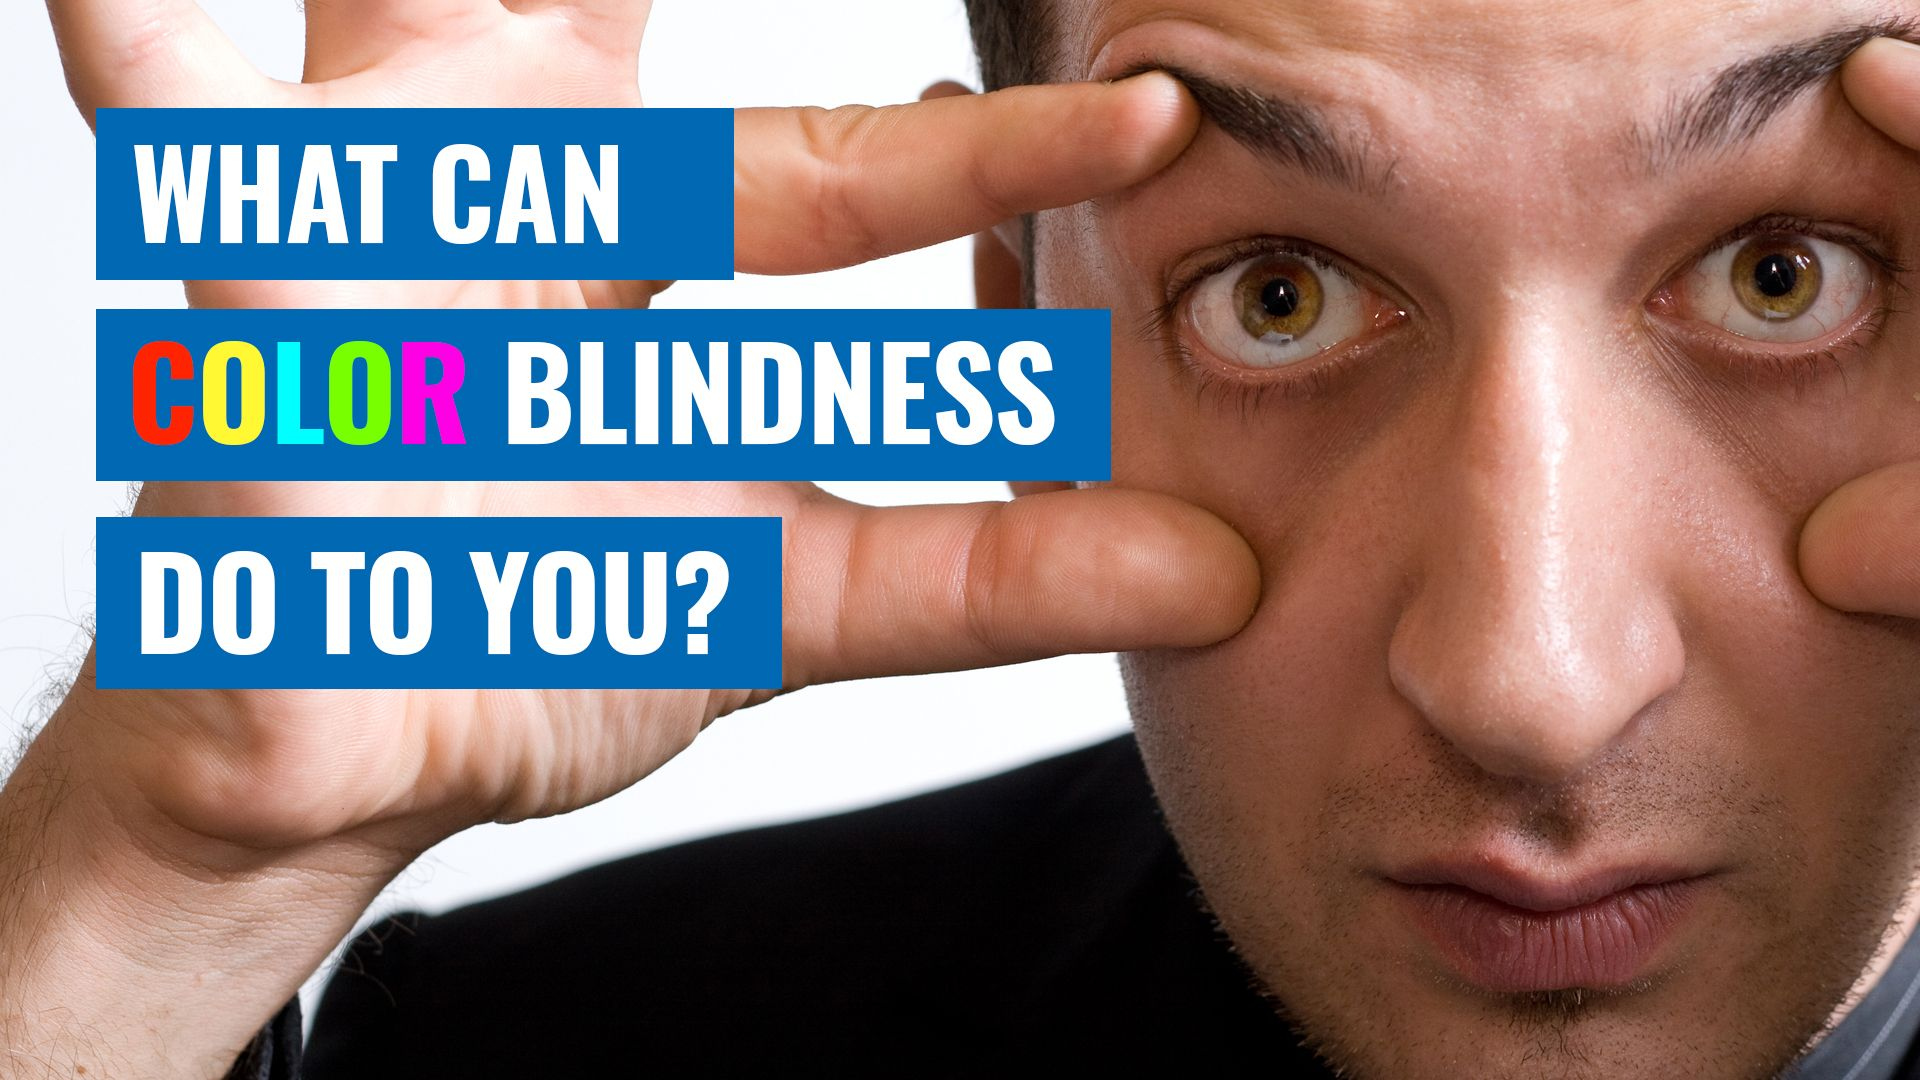 a771aff6410 You Won t Believe What Color Blindness Can Do To You  Causes And Treatment